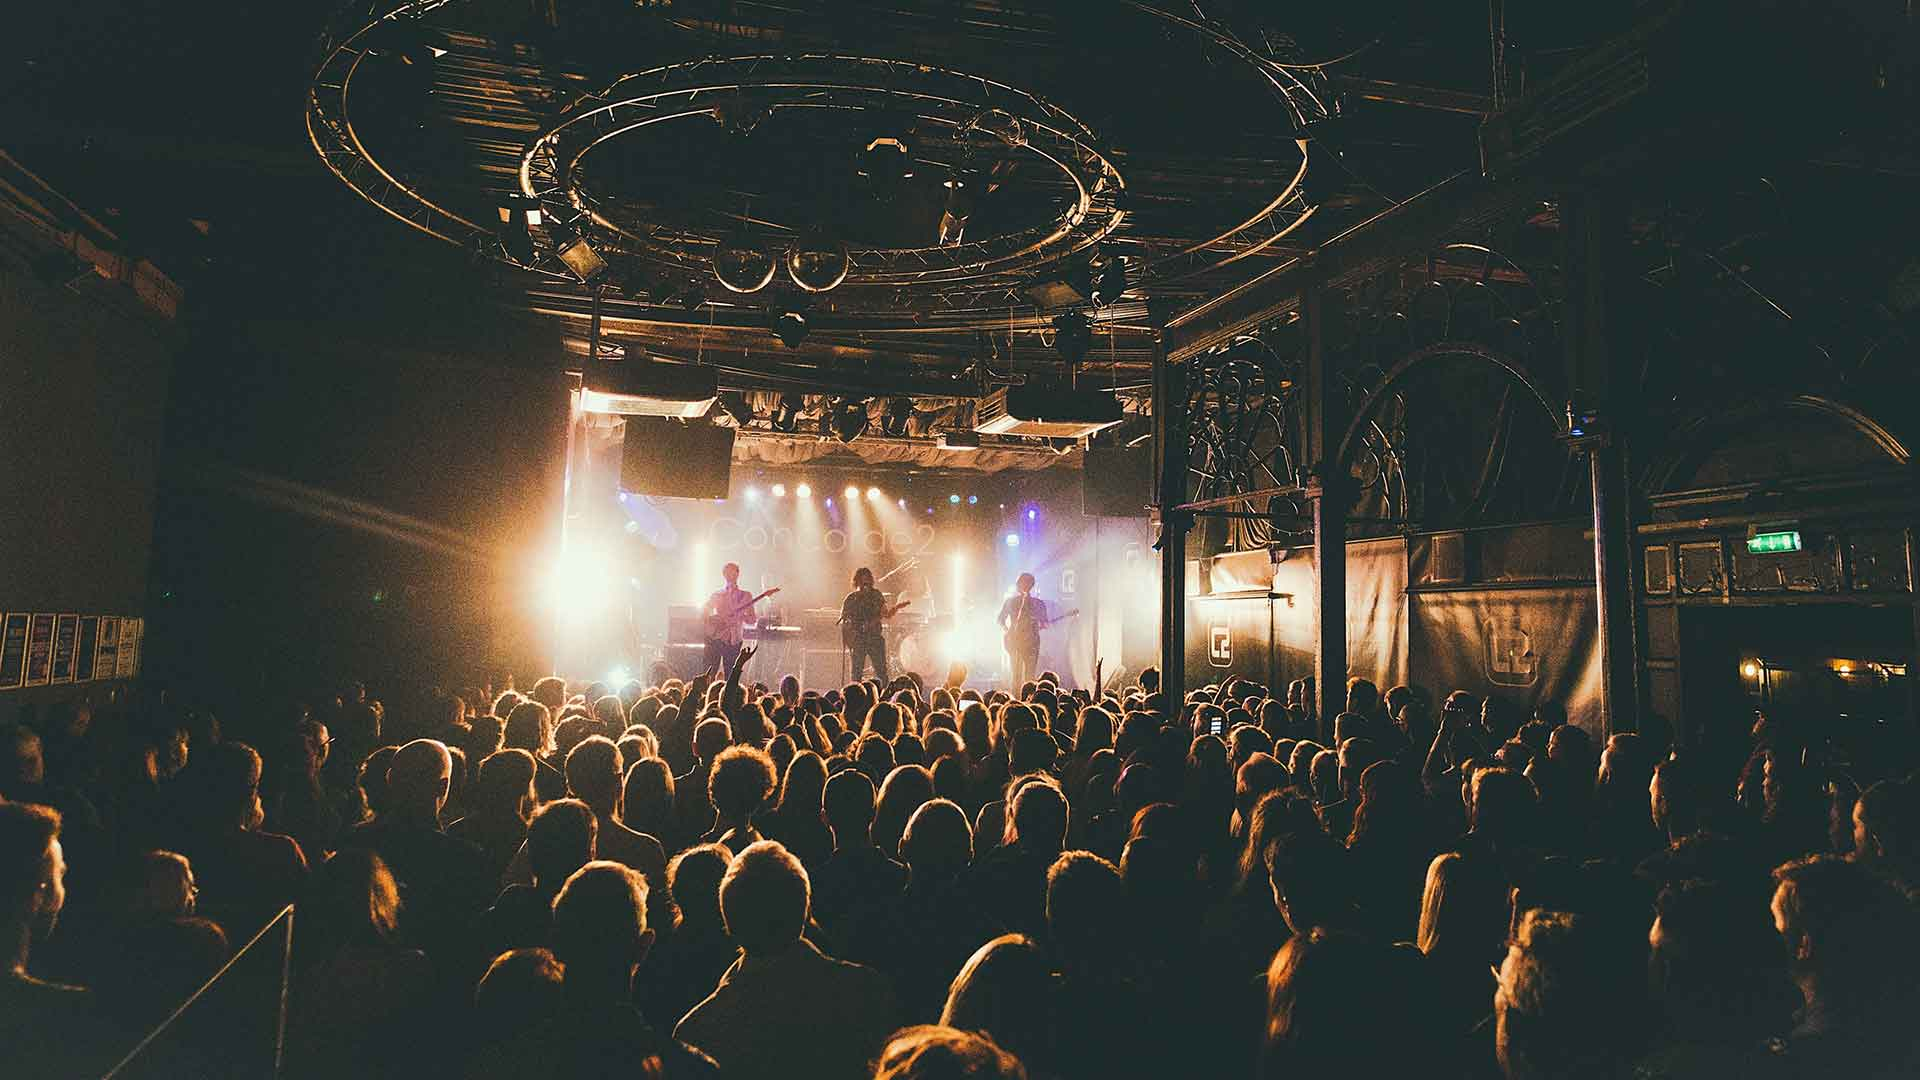 Brighton's music venue Concorde 2 with a band on stage surrounded by fans